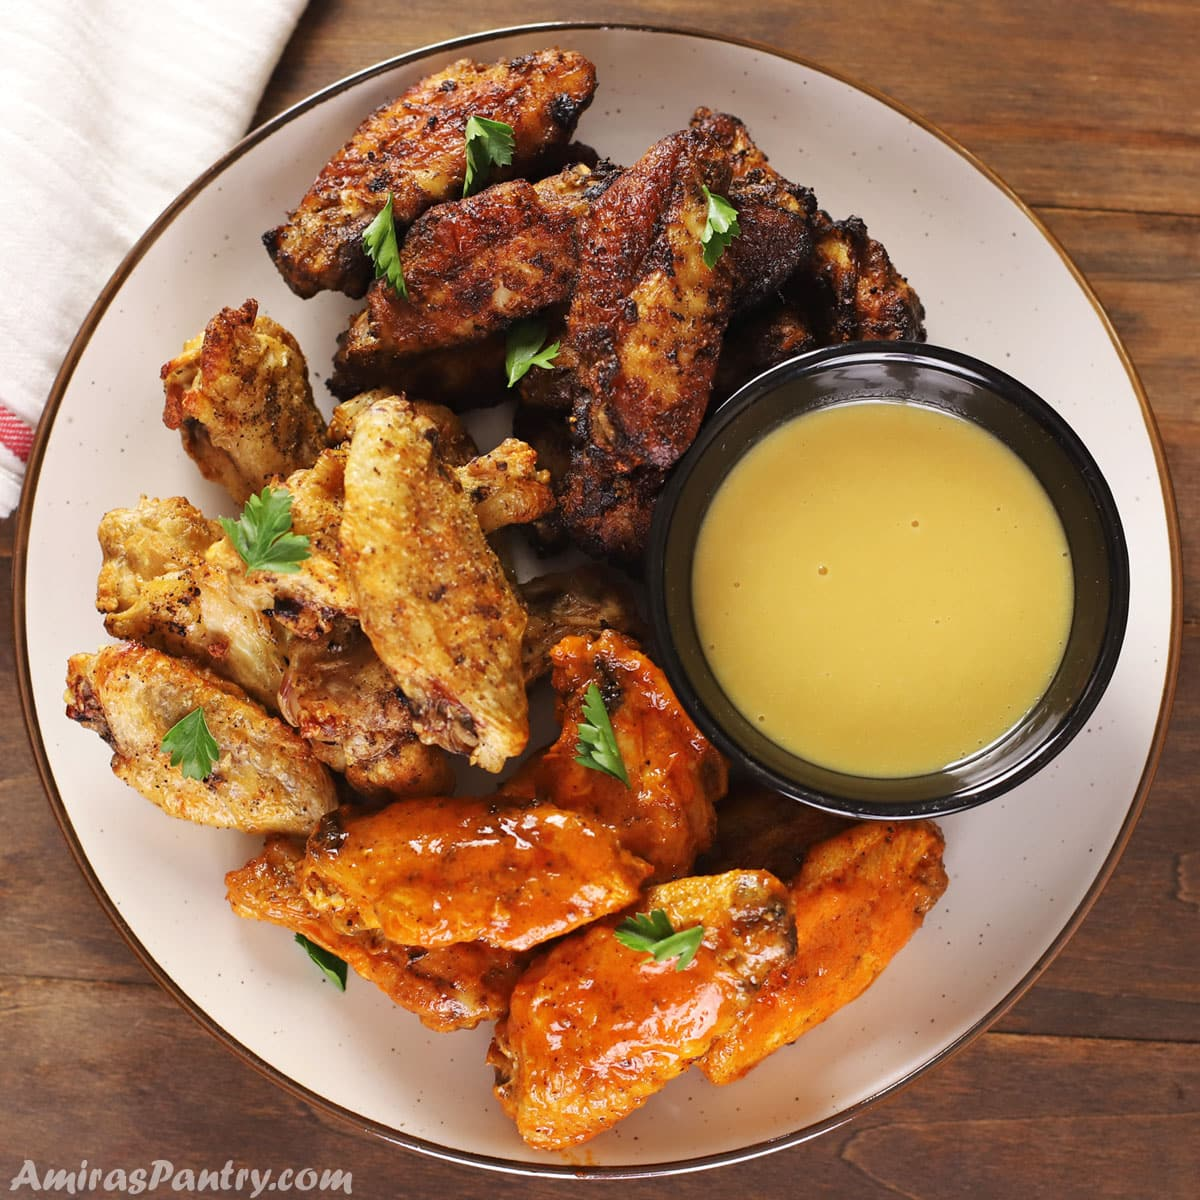 A serving plate of different trypes of air fried wings with a small bowl of sauce on the side.